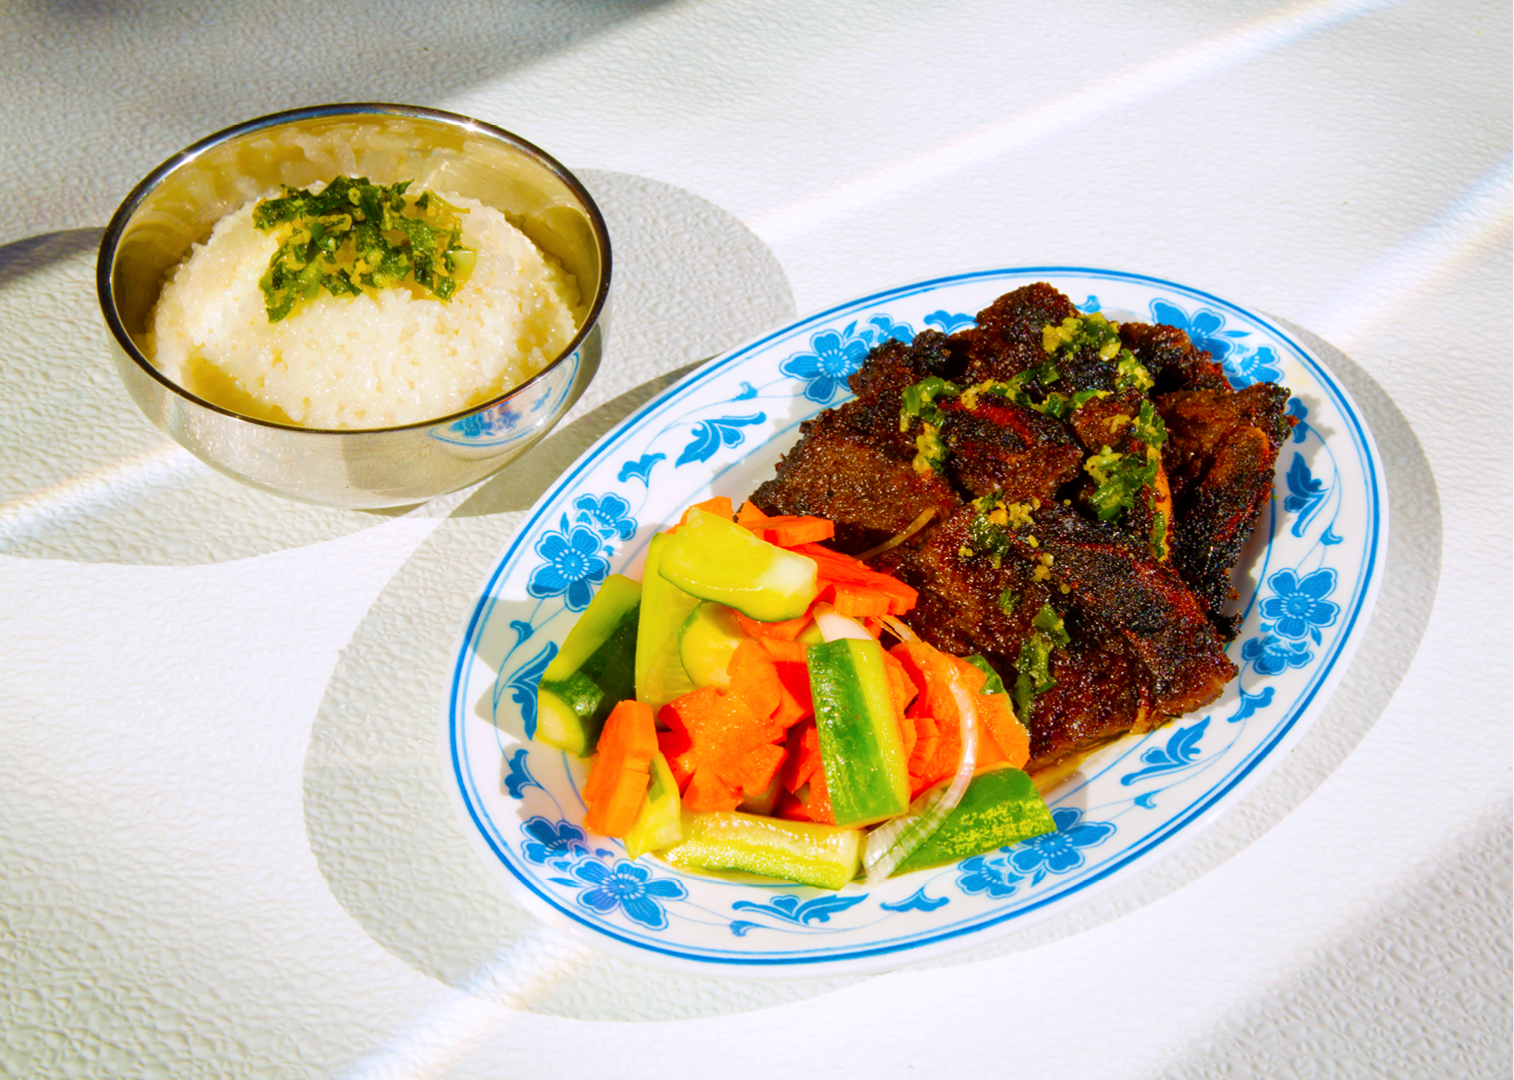 Grilled Beef Short Rib Plate